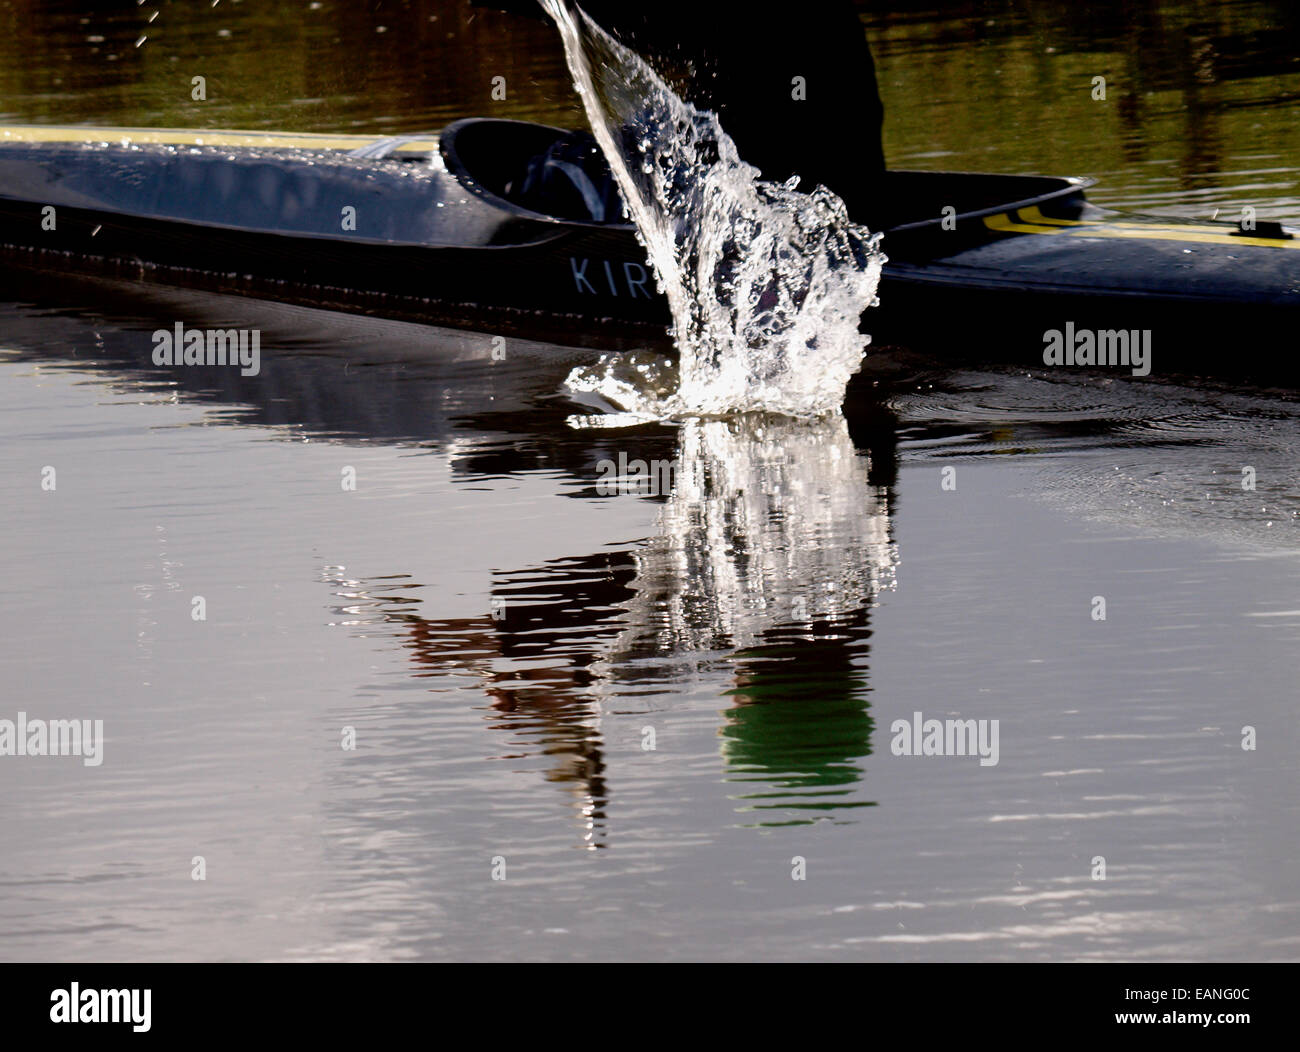 Water splash from a canoeists paddle, Cornwall, UK - Stock Image